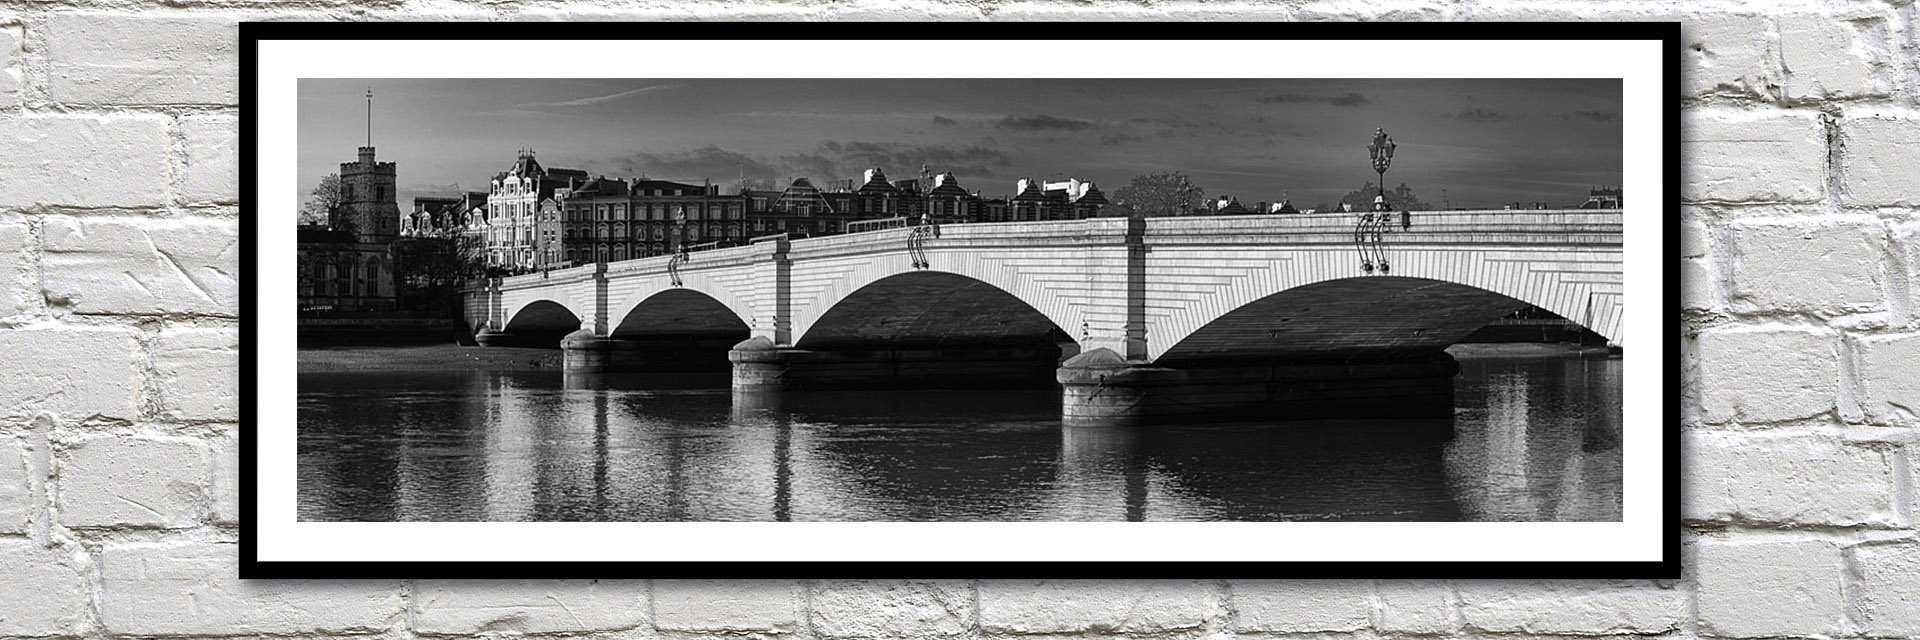 Office art ideas - prints of the bridges which cross the River Thames in London